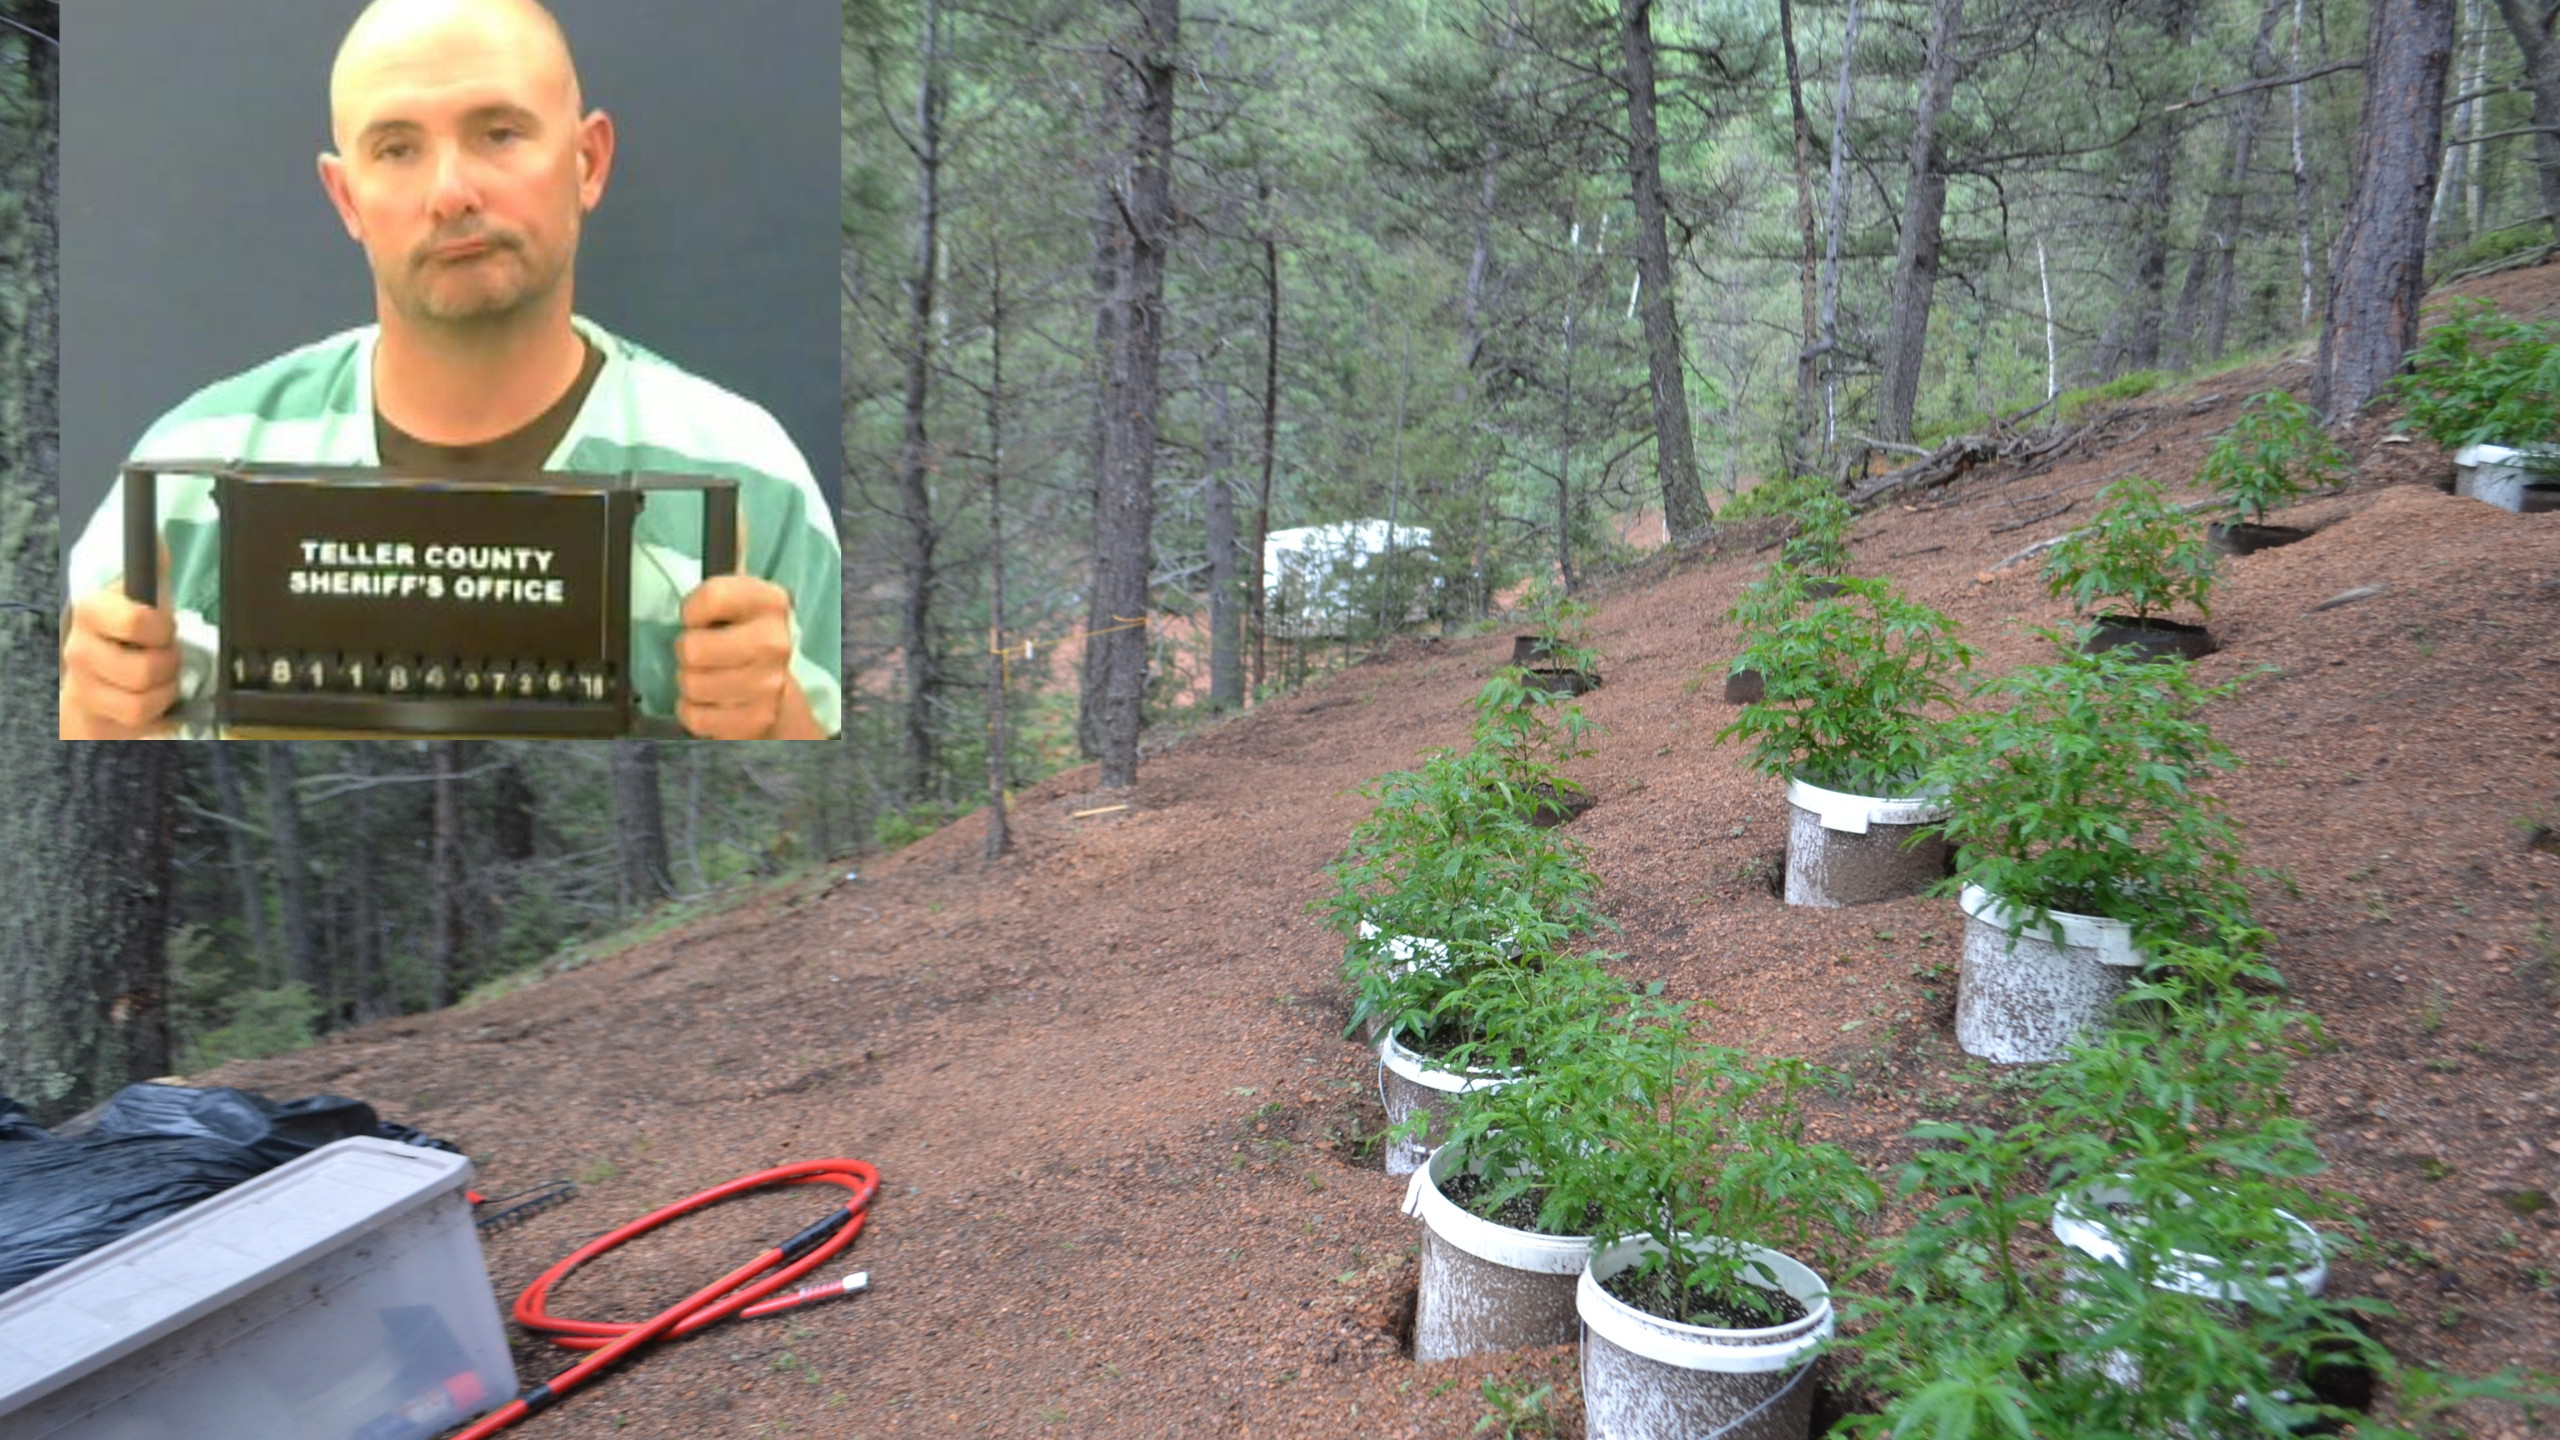 Bobby Scanlon was arrested in connection with this illegal marijuana grow near Divide Thursday. Teller County Sheriff's Office